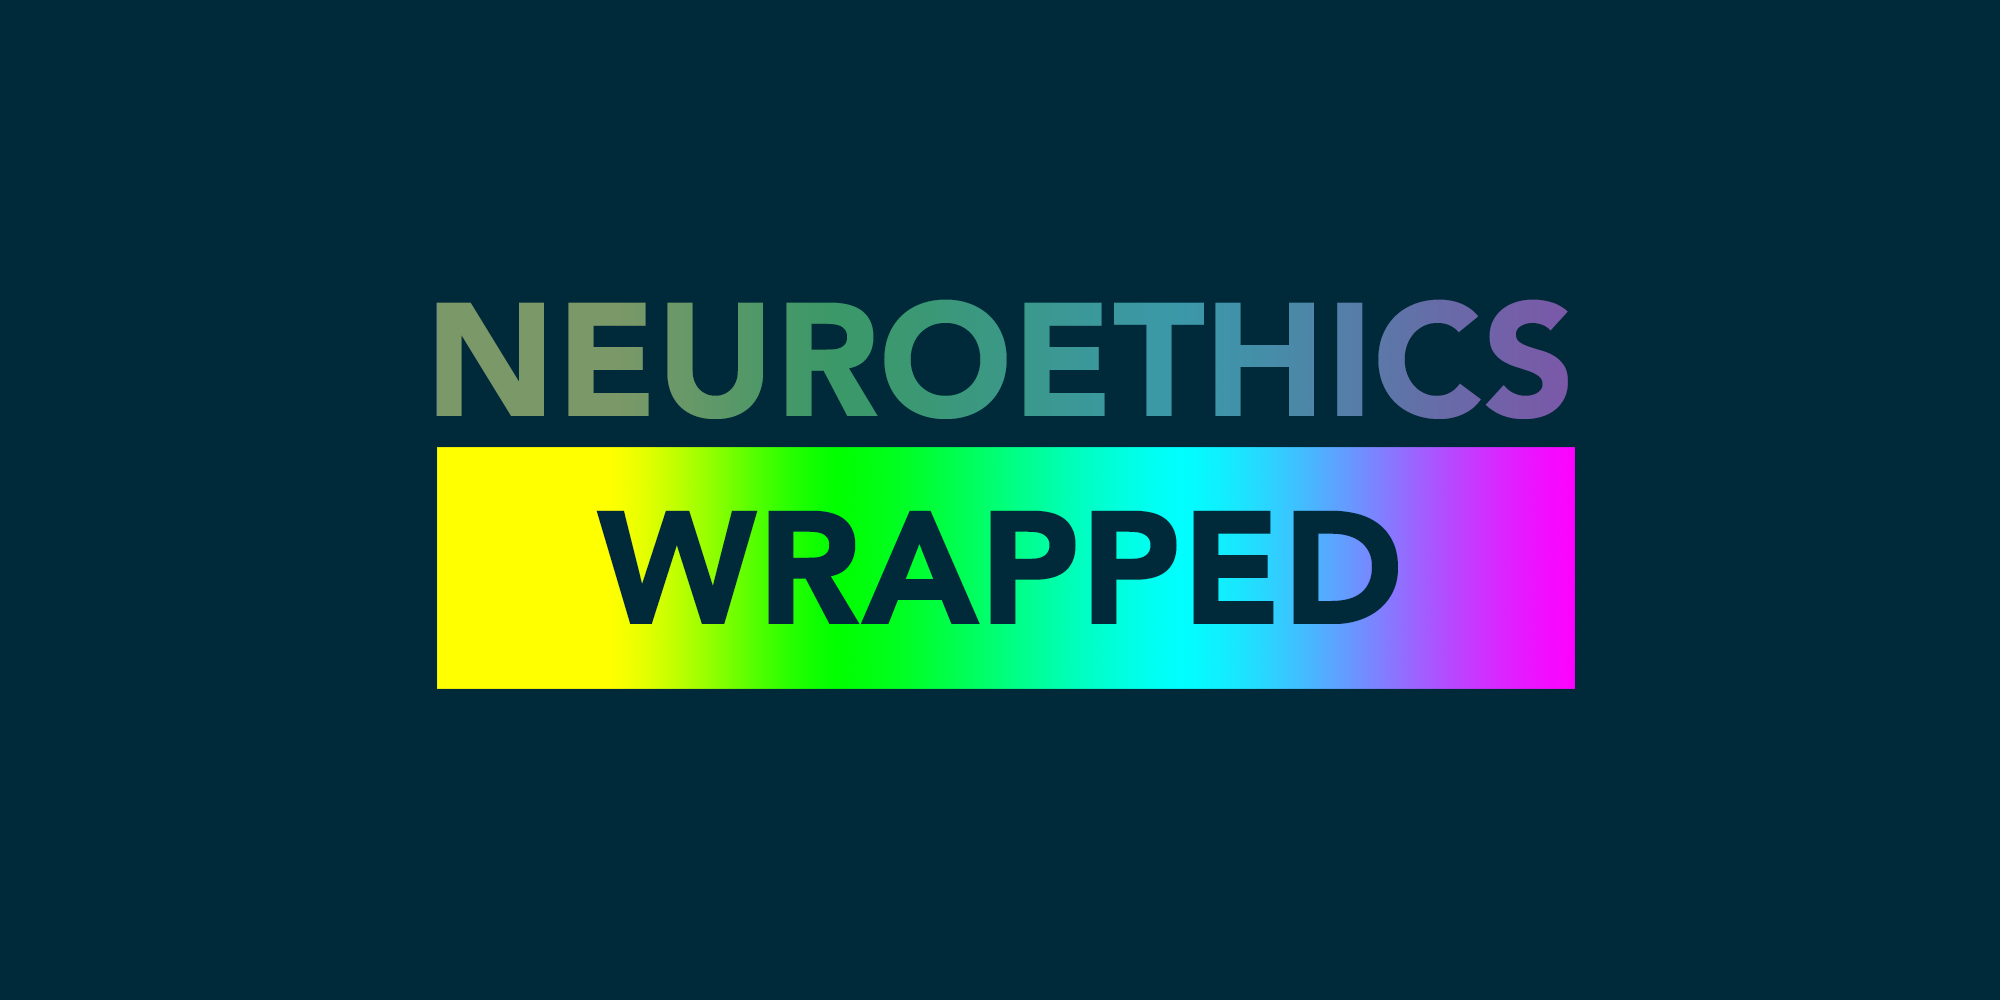 Neuroethics wrapped rainbow background